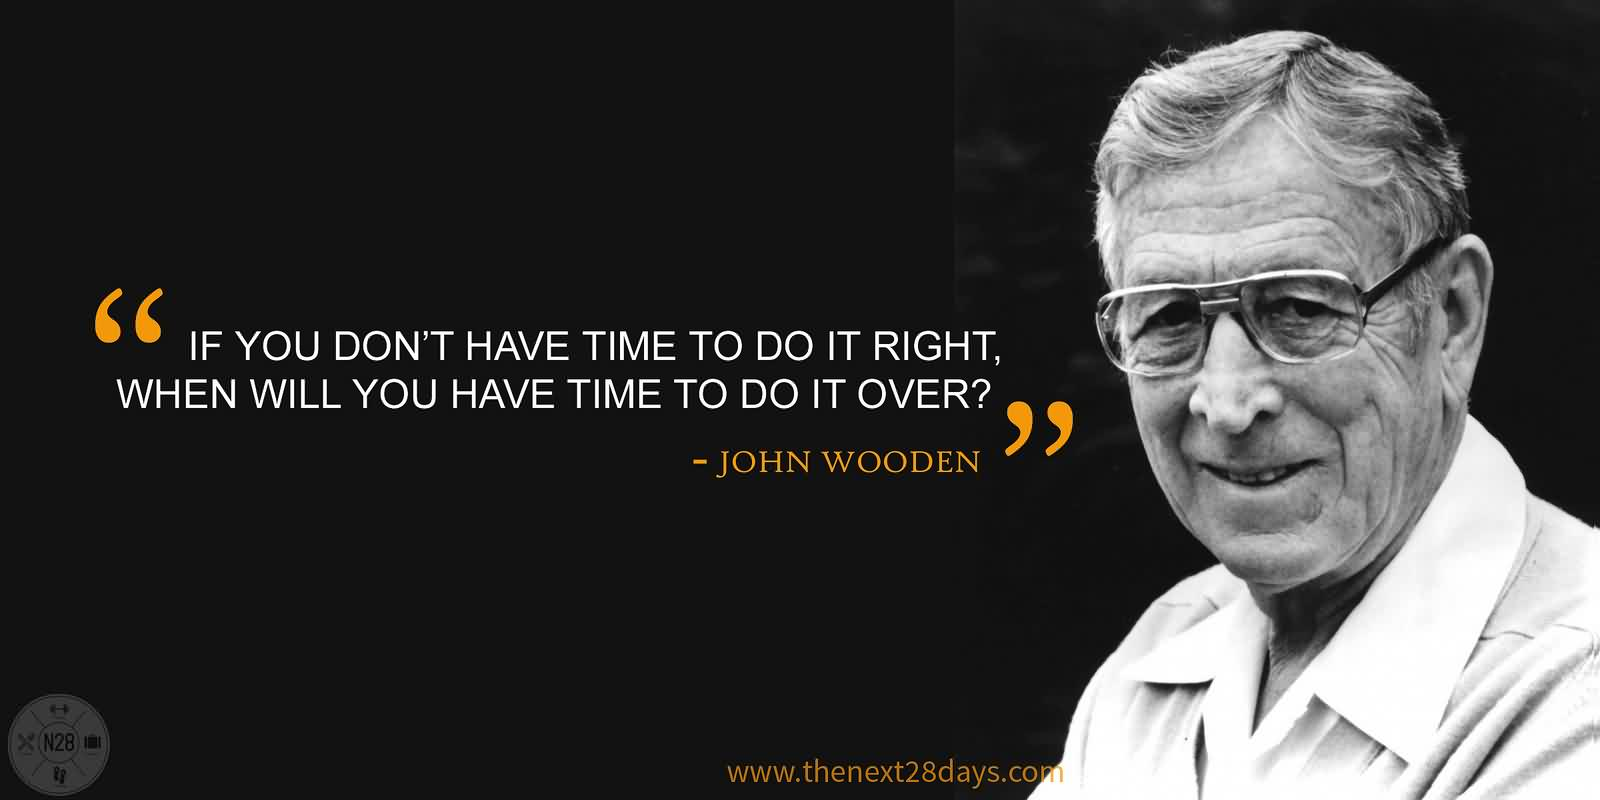 Mind Blowing John Wooden Quotes